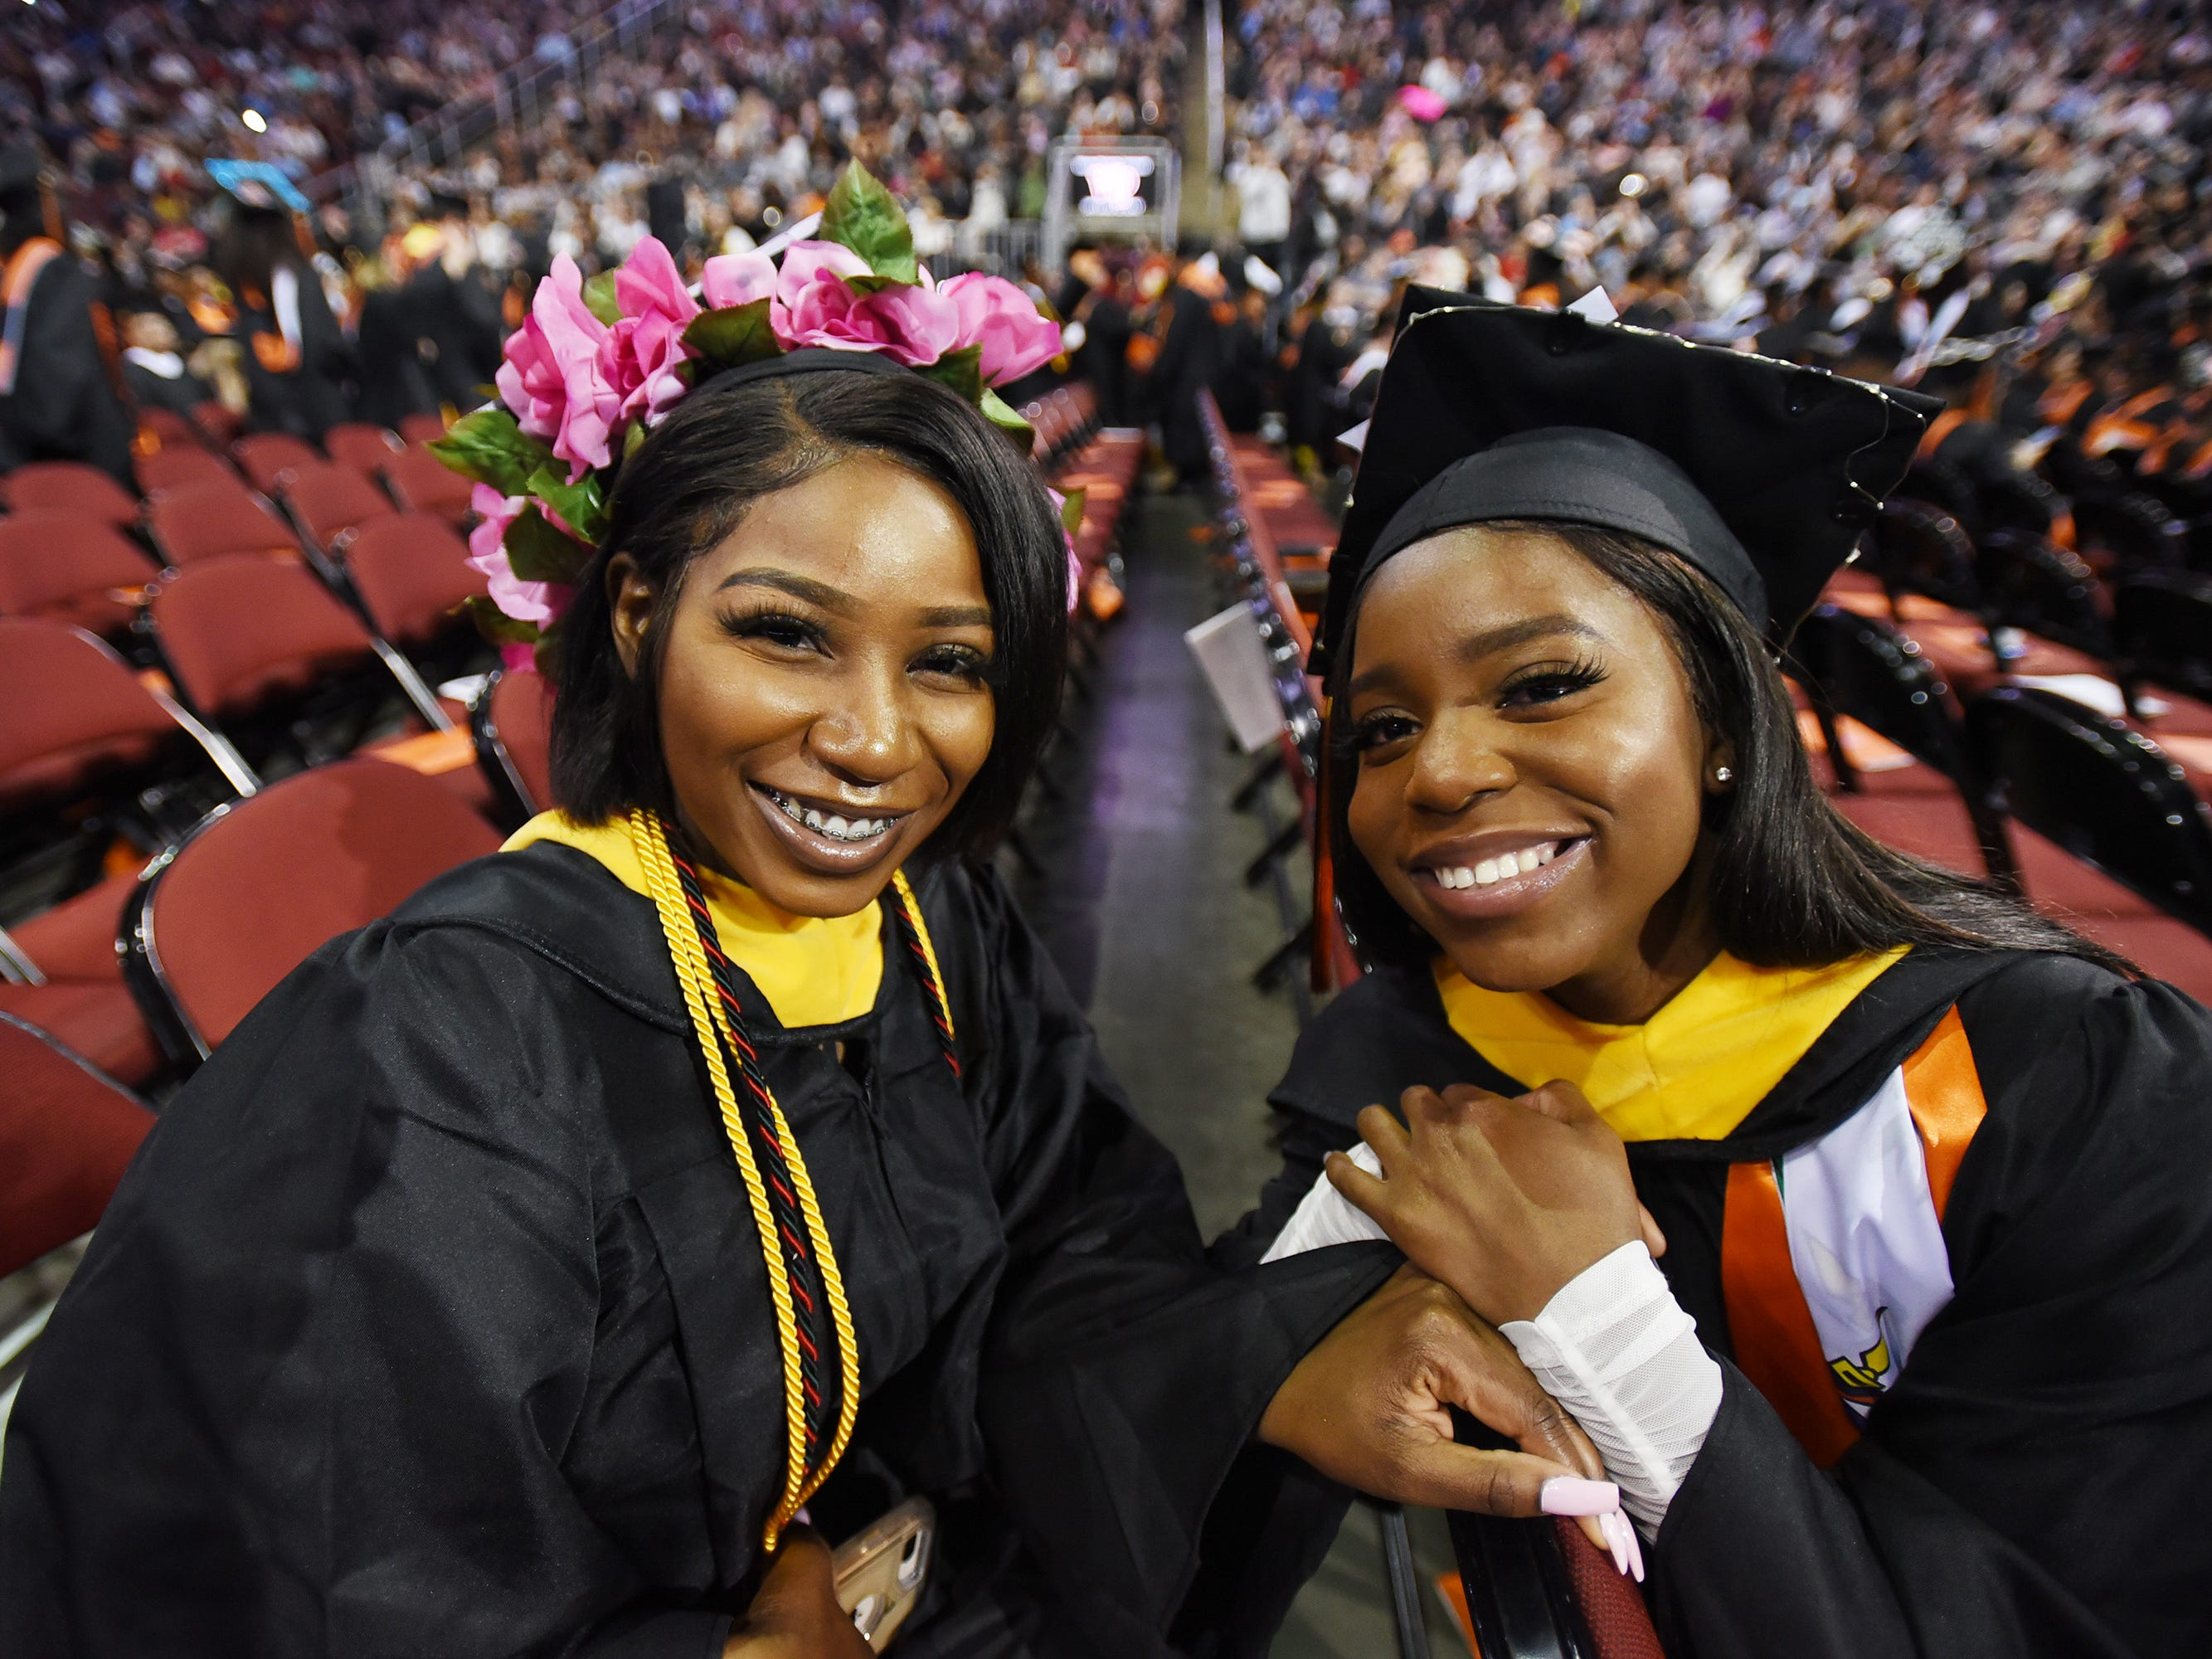 Photo of Sofia Philogene (L) of Hillside, Major in Exercise Science and Christy Demosthenes (R) of Hillside, Major in Health Studies, pose for photos during the William Paterson University 2019 Commencement at the Prudential Center in Newark on 05/15/19.